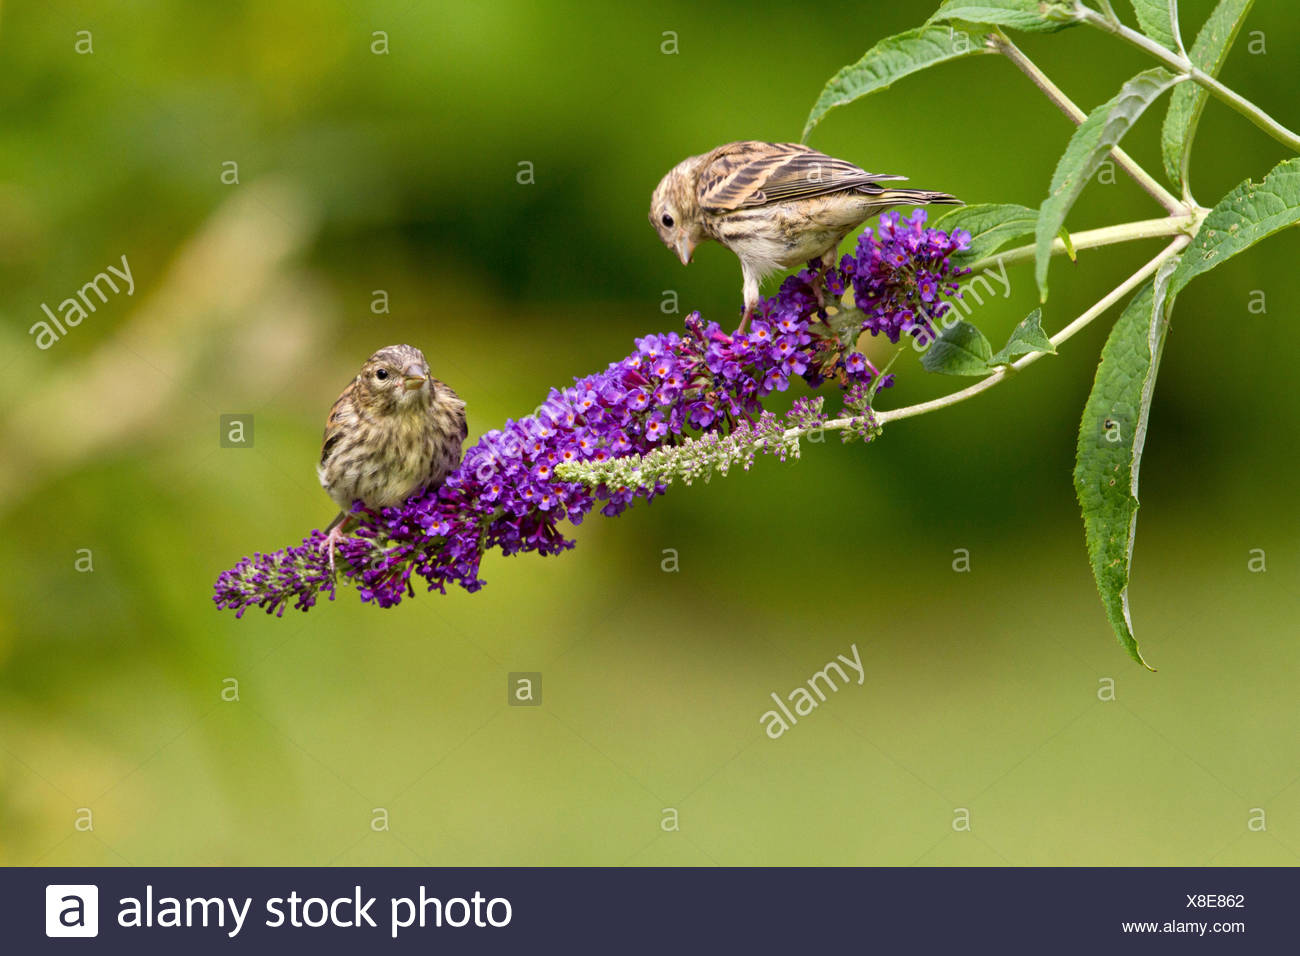 European serin (Serinus serinus), two young birds sitting on a blooming twig of a summer lilac, Germany - Stock Image